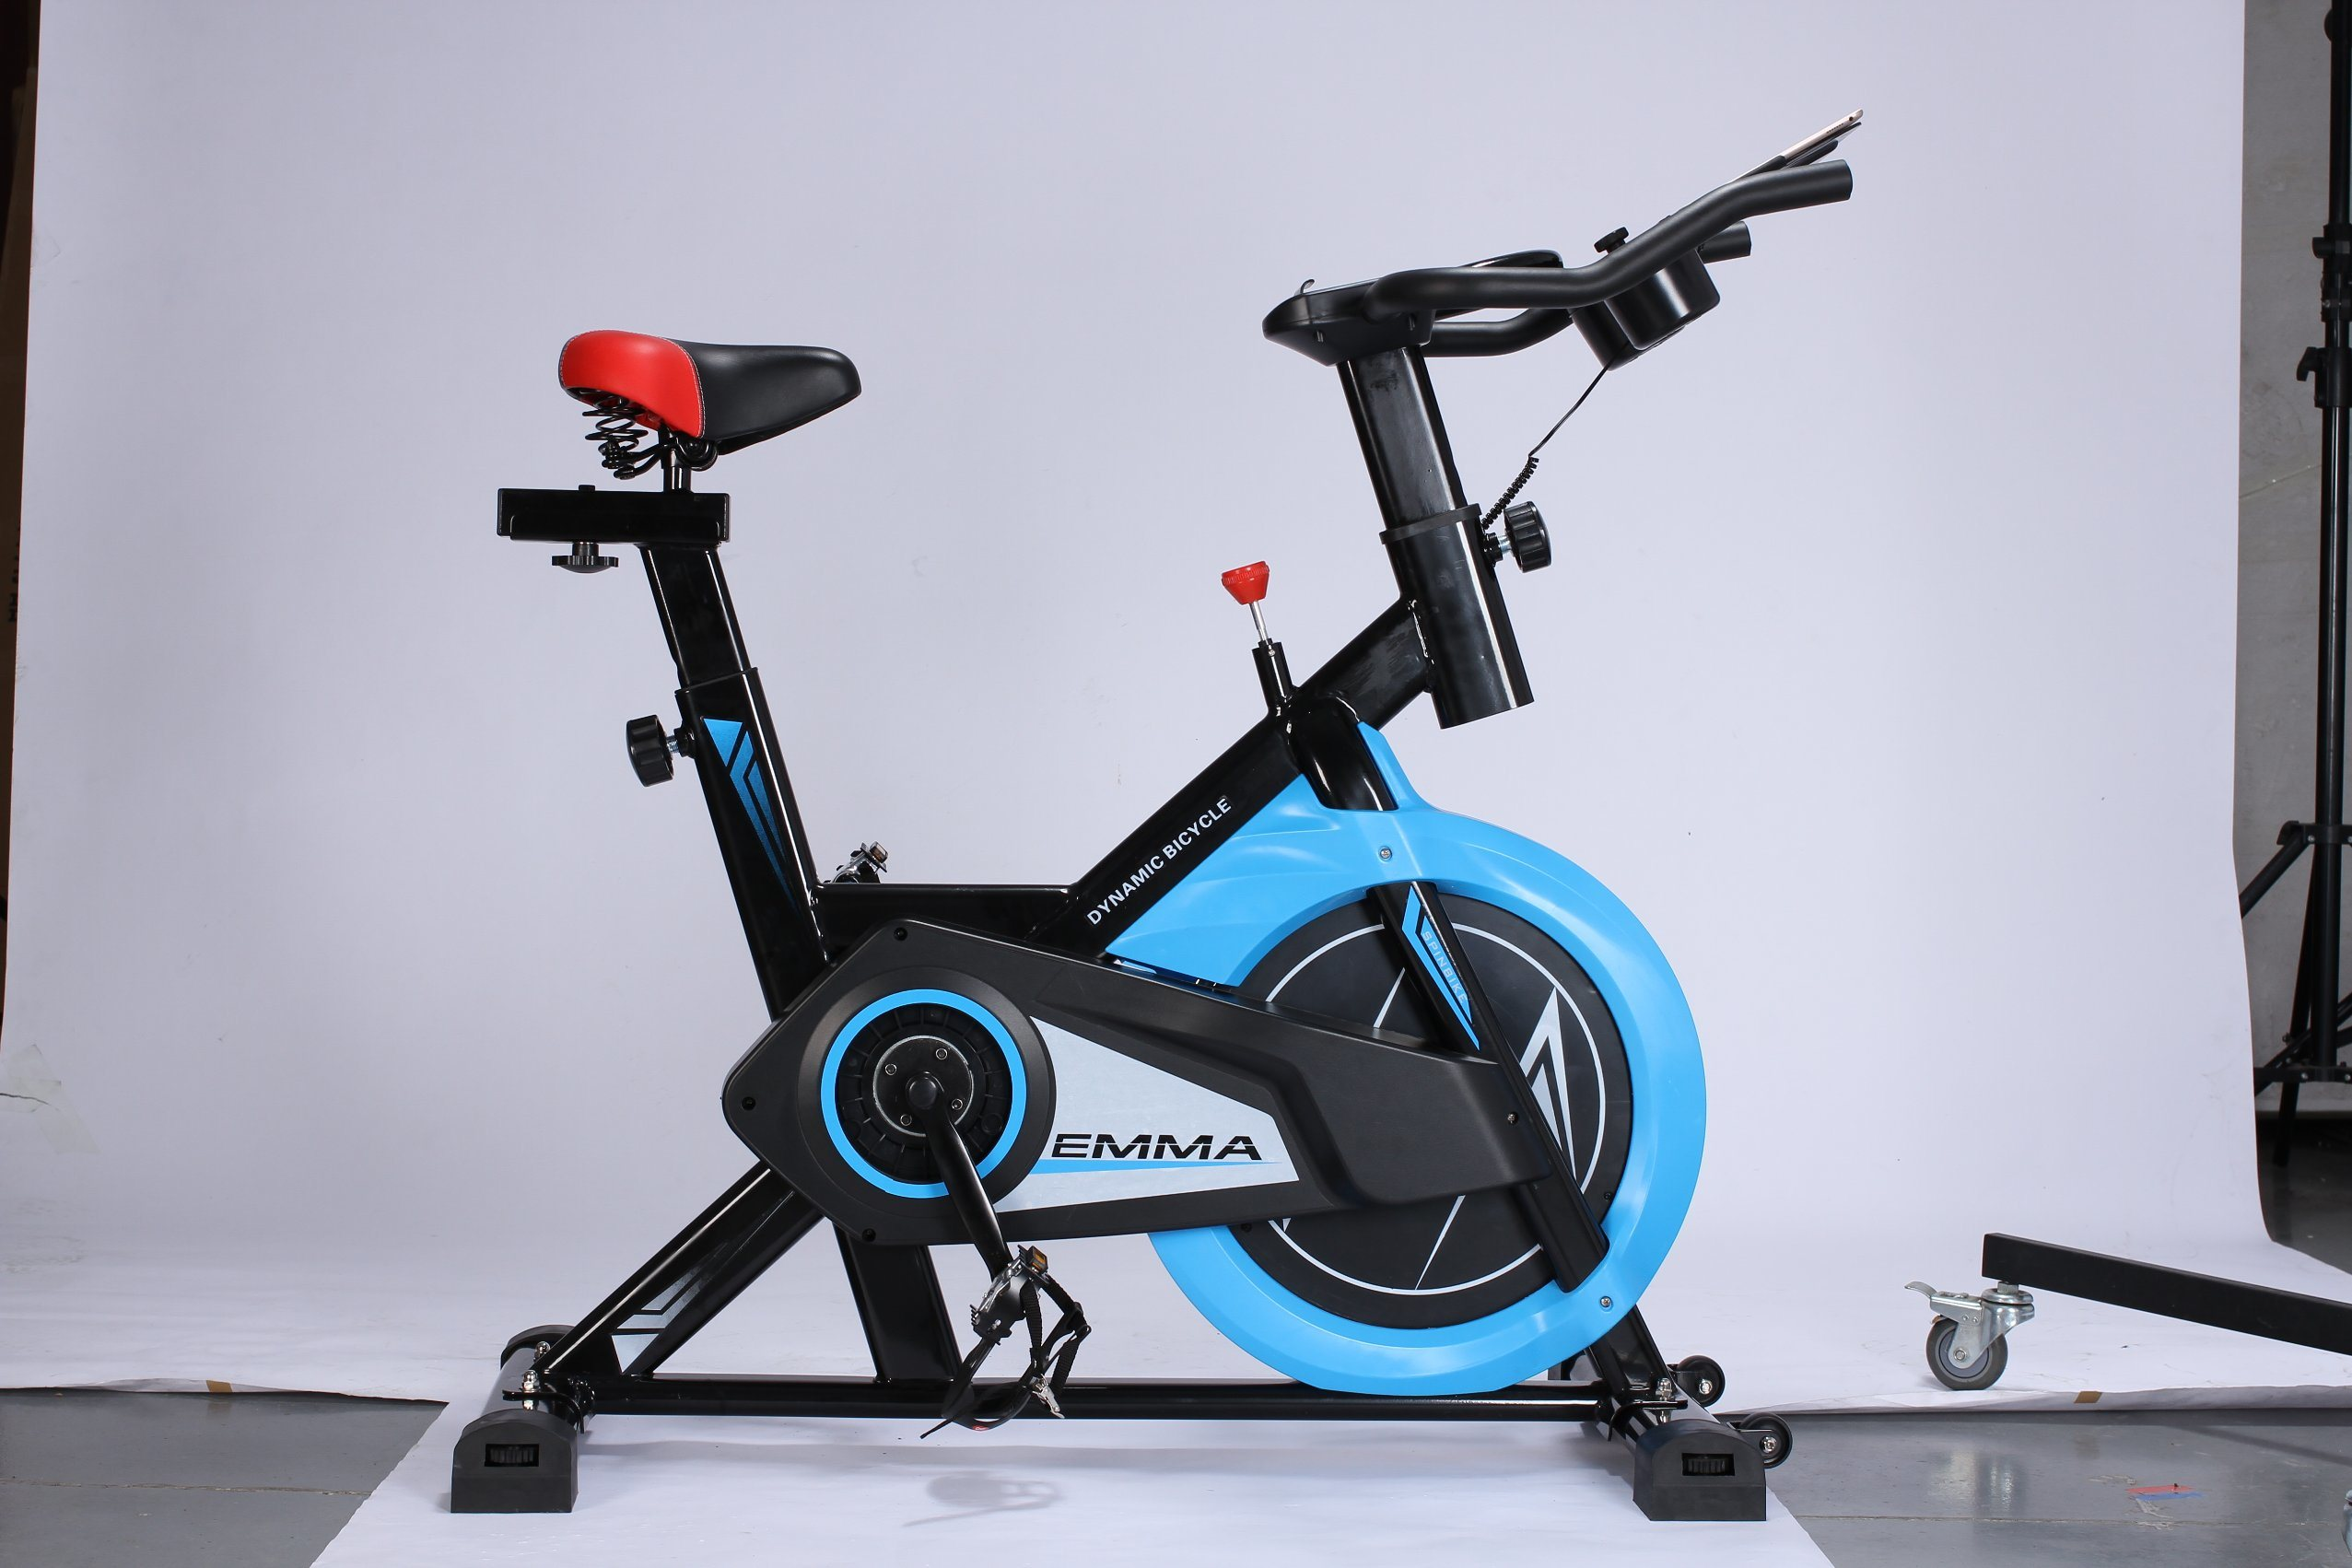 Exercise Bike Stationary Bicycle Cycling Fitness Cardio Indoor Home Workout am